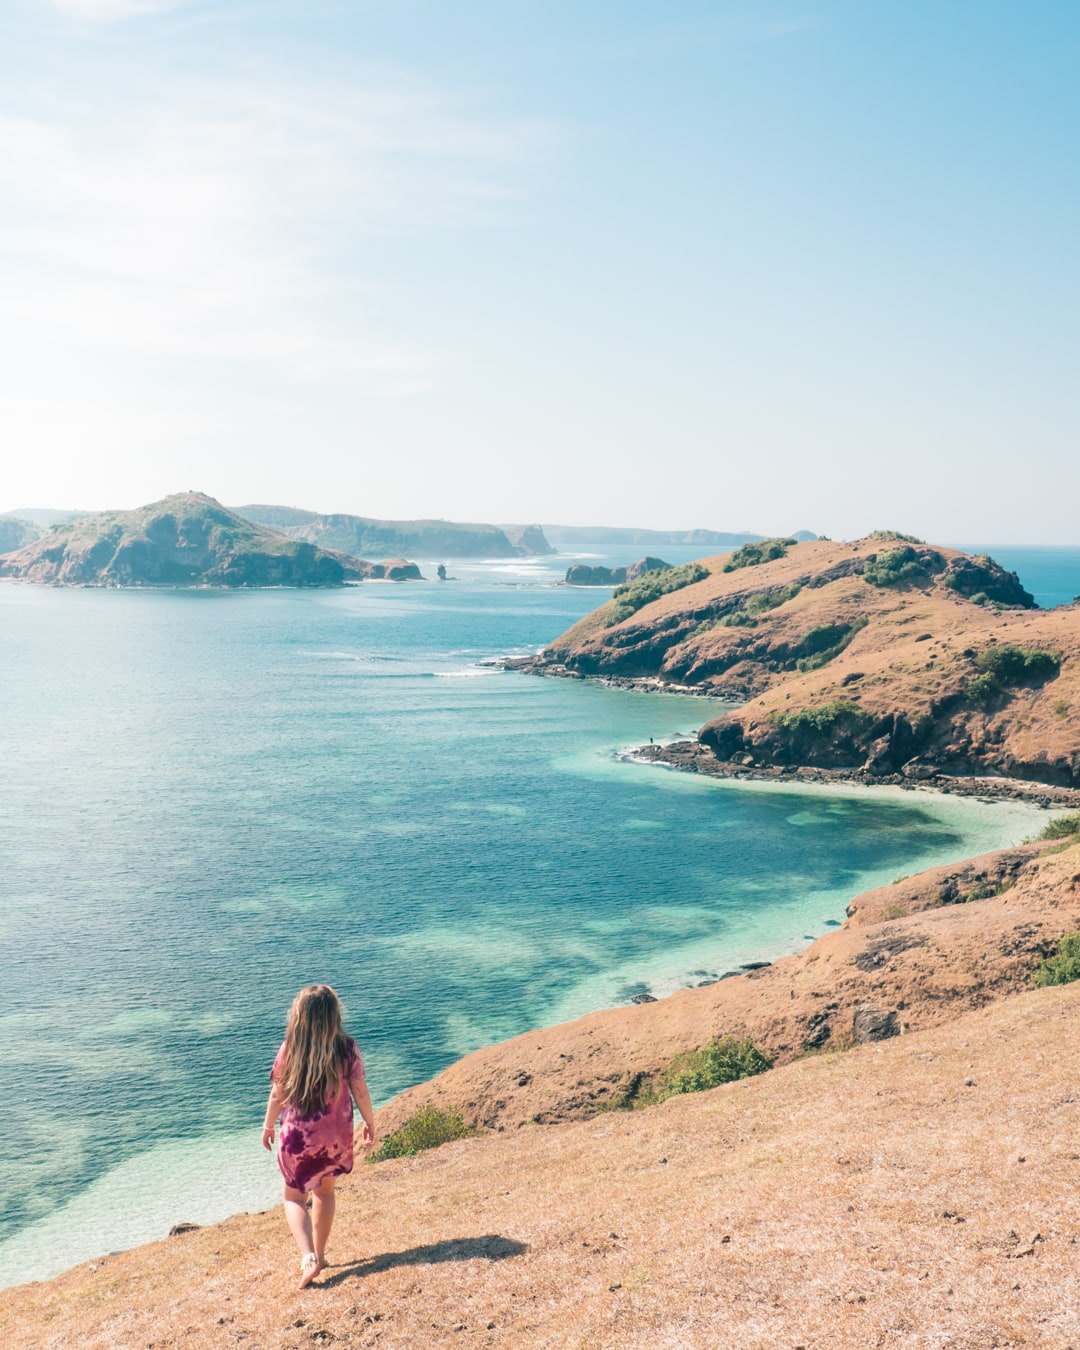 Bukit Merese in Lombok - The best place to watch the sunset in south #lombok #indonesia